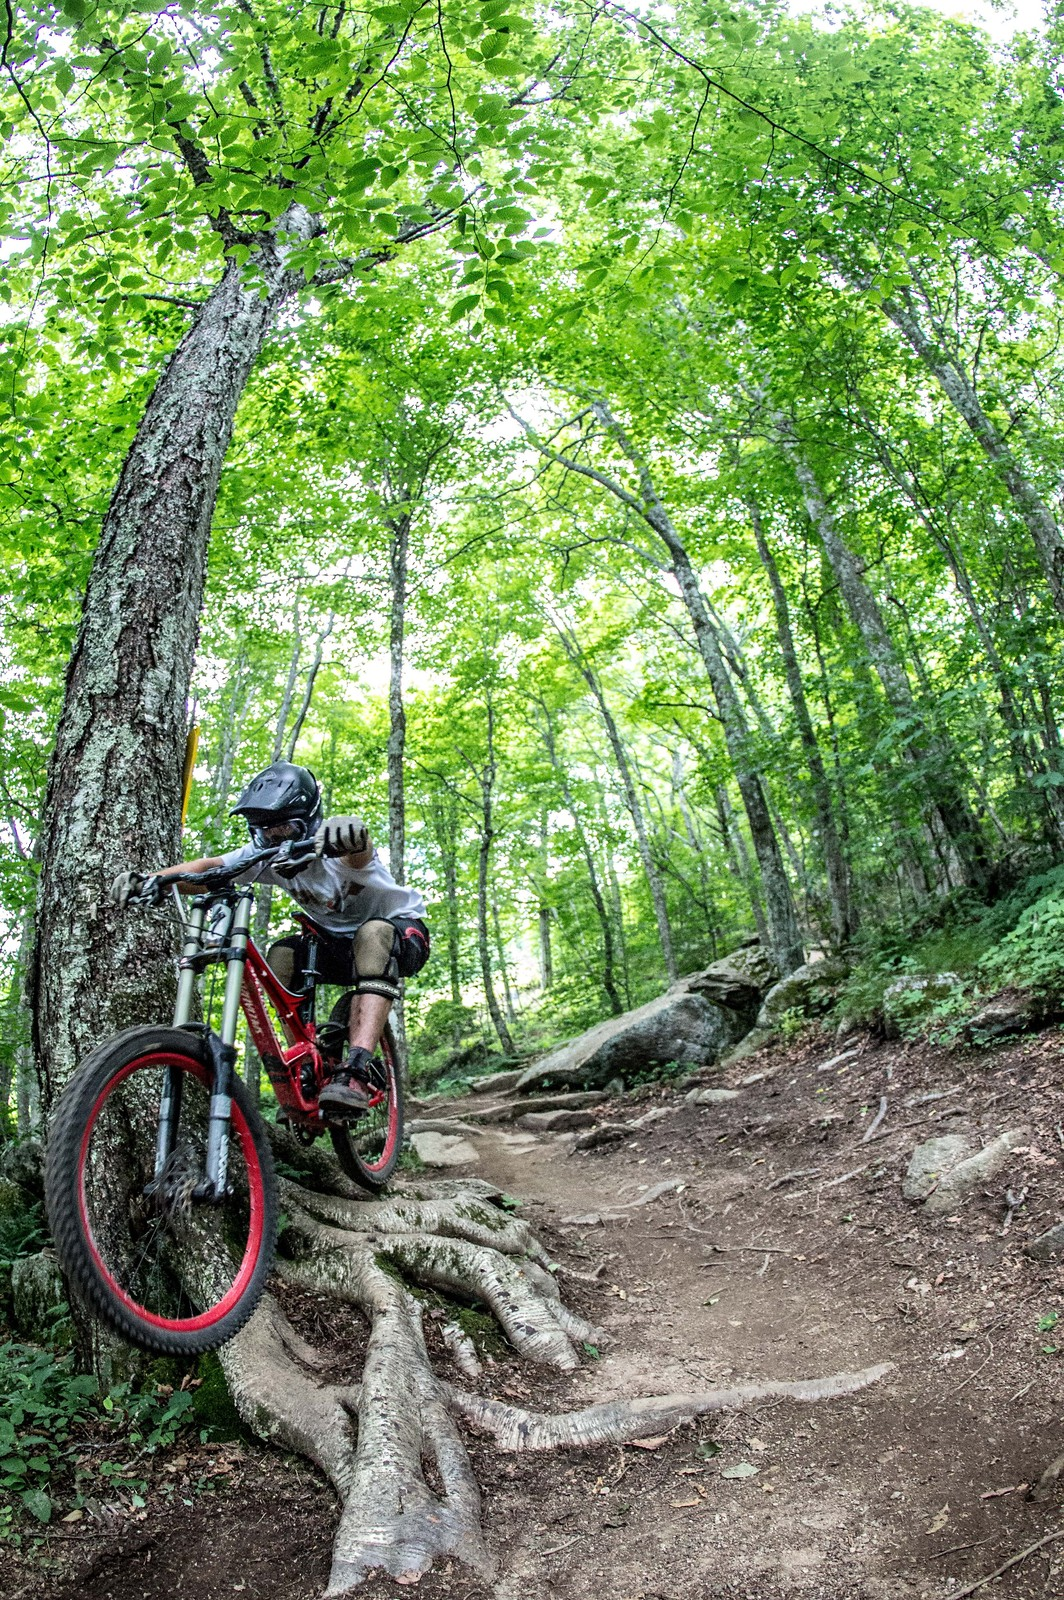 IMG 3847 - mtndrew - Mountain Biking Pictures - Vital MTB